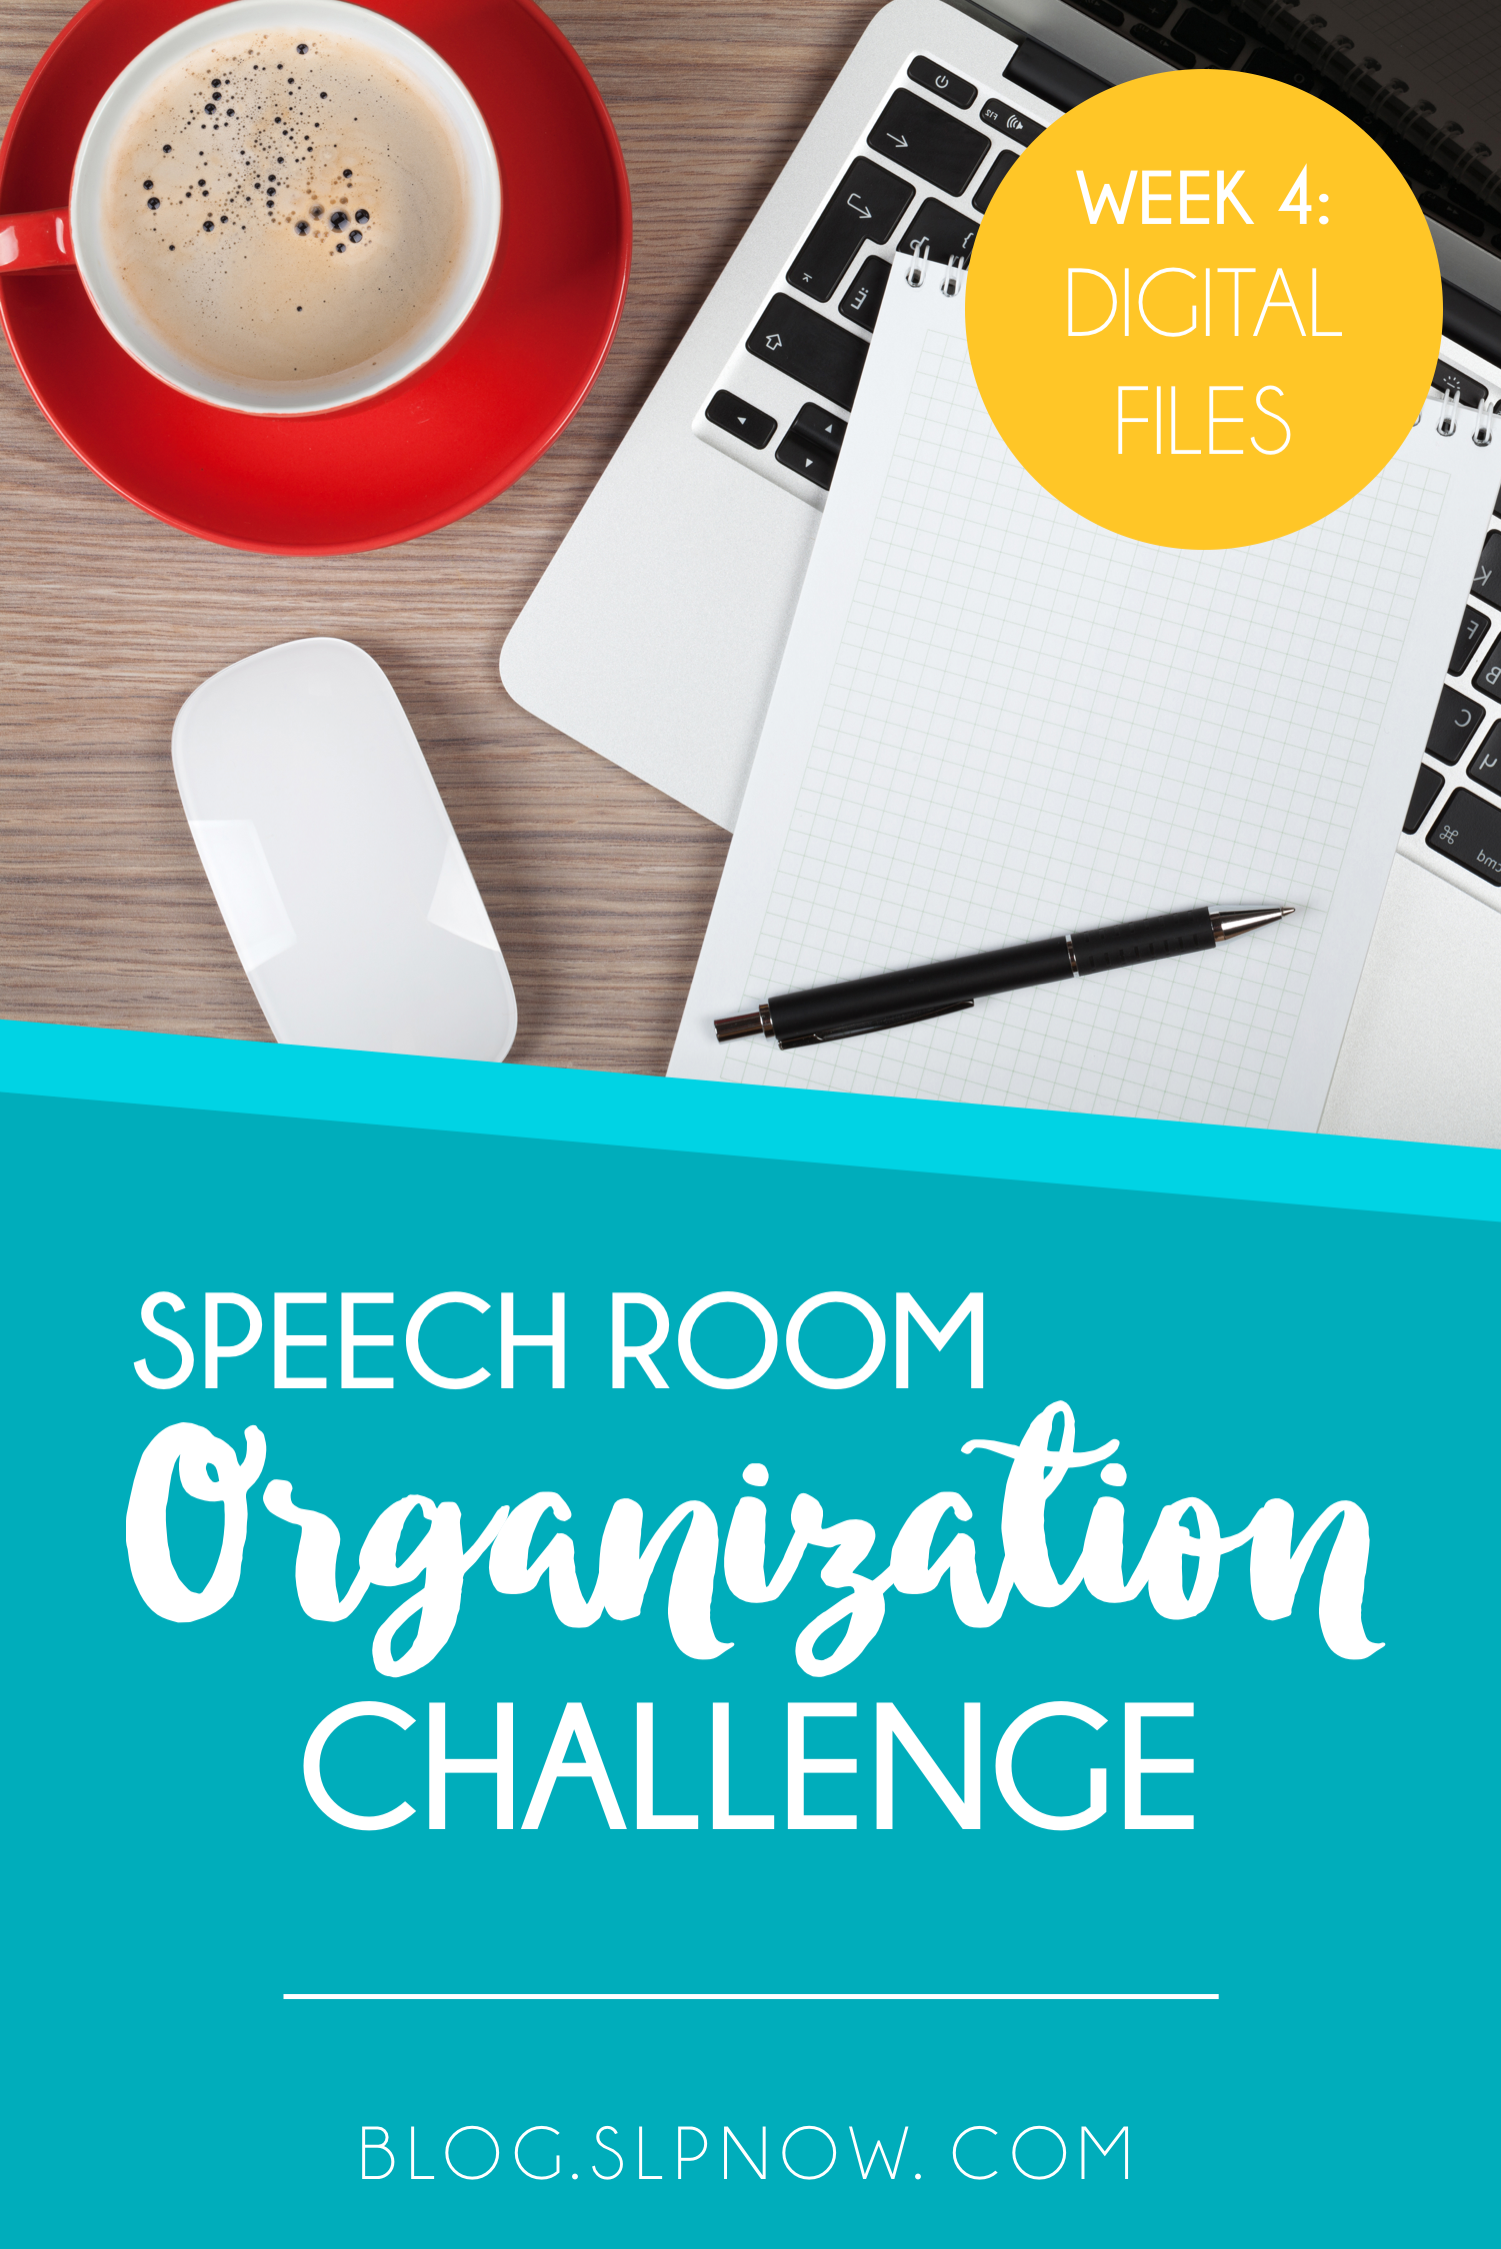 Google Drive is a lifesaver when I'm organizing speech therapy materials! Did you know you can use its tools to draw in student engagement? Head to blog.slpnow.com/digital-therapy-materials for amazing ways to use your digital space!